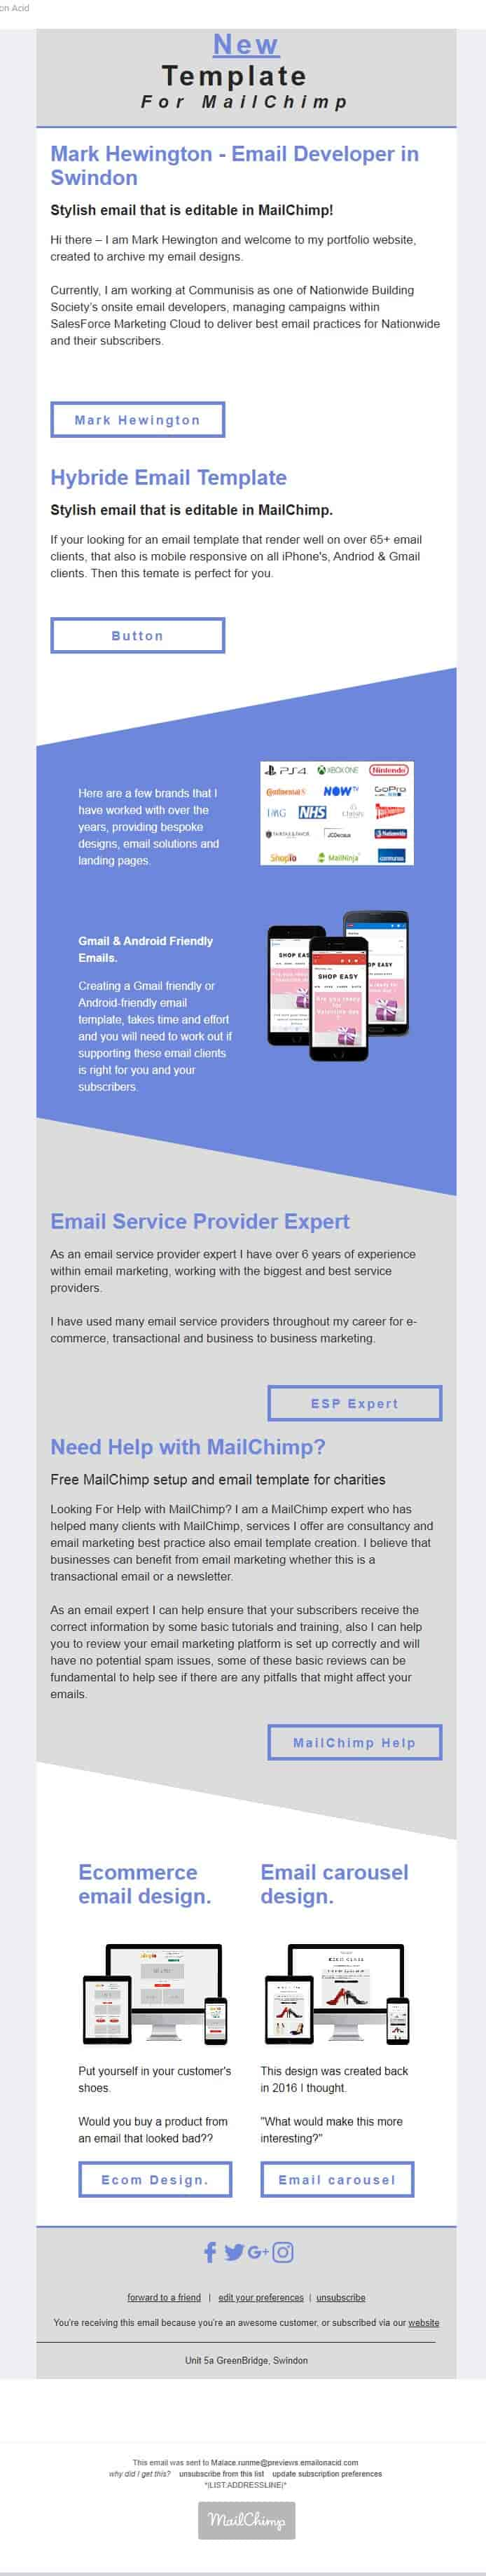 Editable MailChimp Email Template design for Yahoo email clients